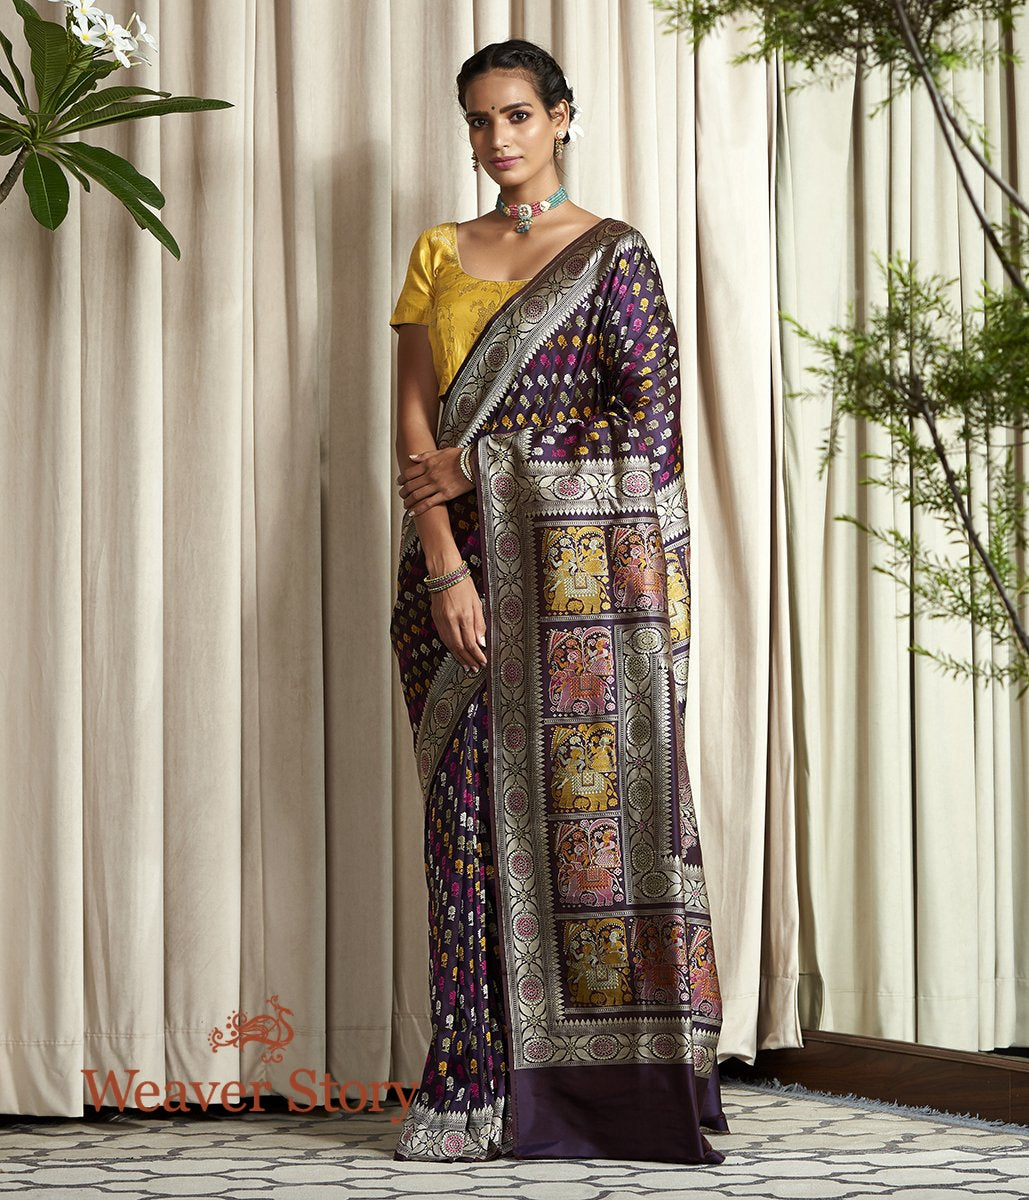 Handwoven Banarasi Baluchari Saree in Dark Purple with Elephant Pallu